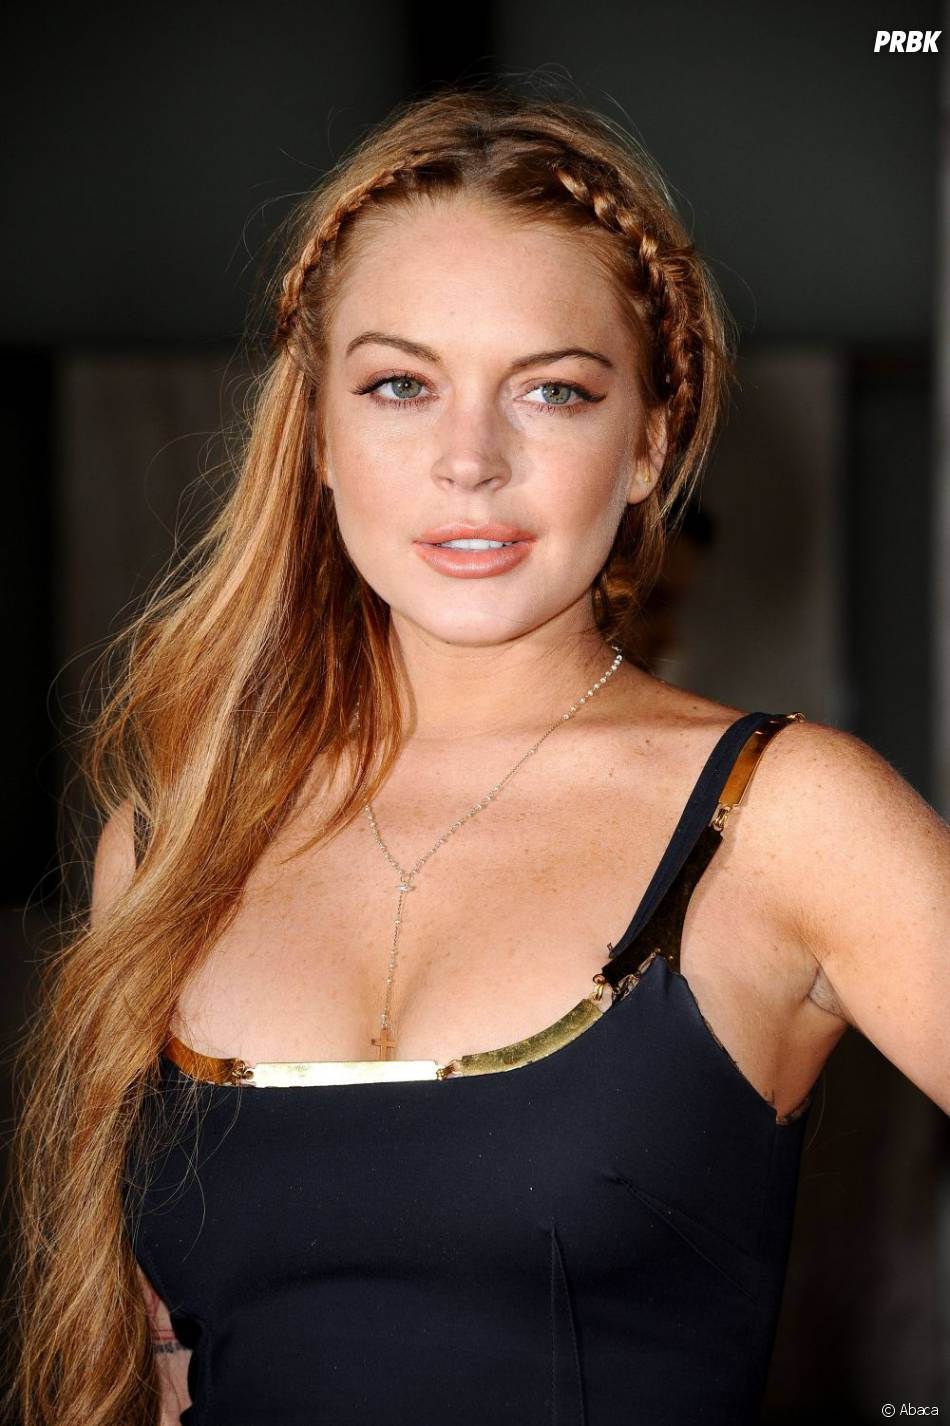 Lindsay Lohan à l'avant-première de Scary Movie 5, le 11 avril 2013 à L.A